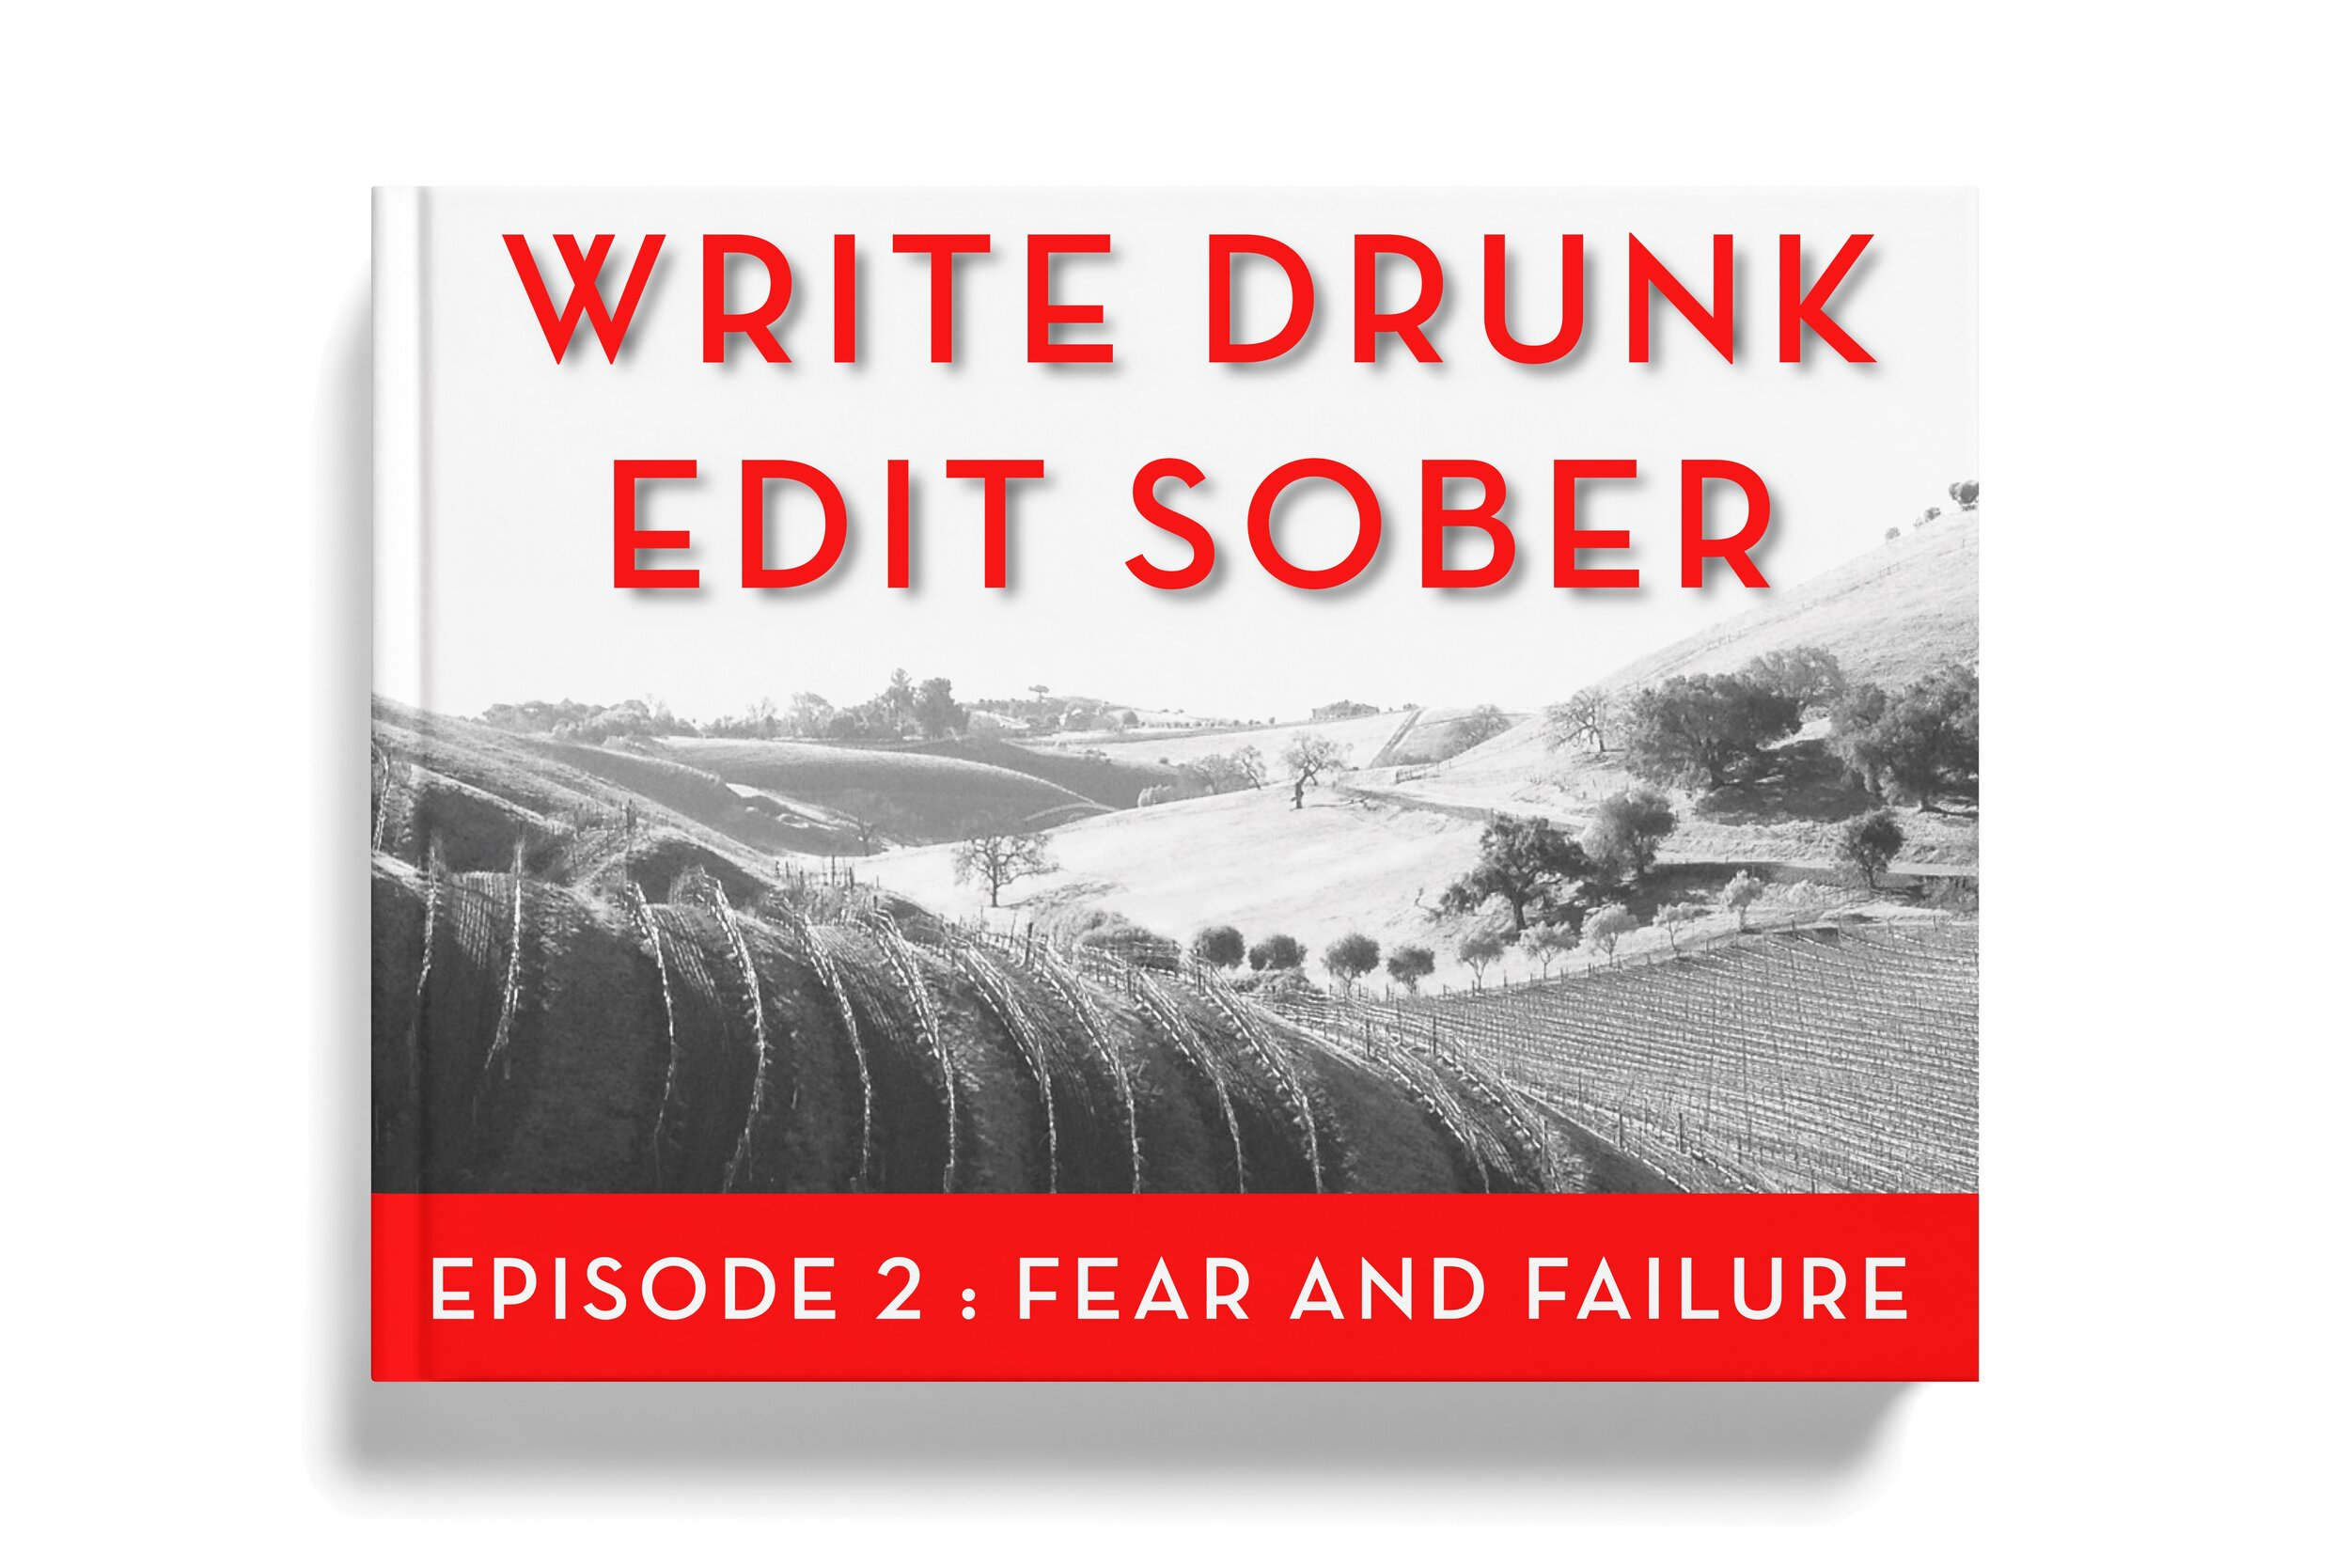 THE BOOK REPORT - Fear and Failure